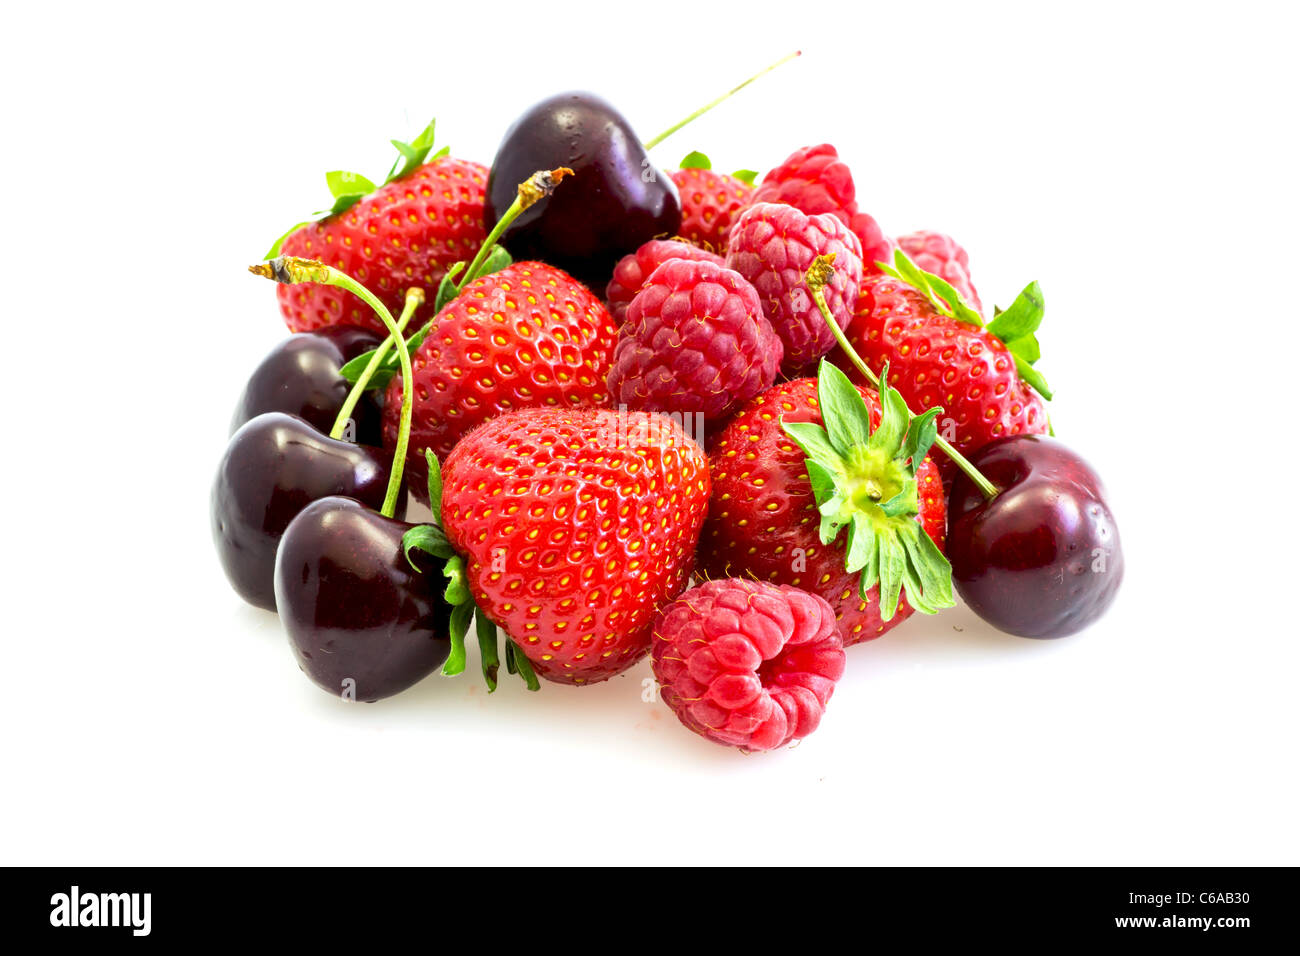 various types of red fruit - Stock Image